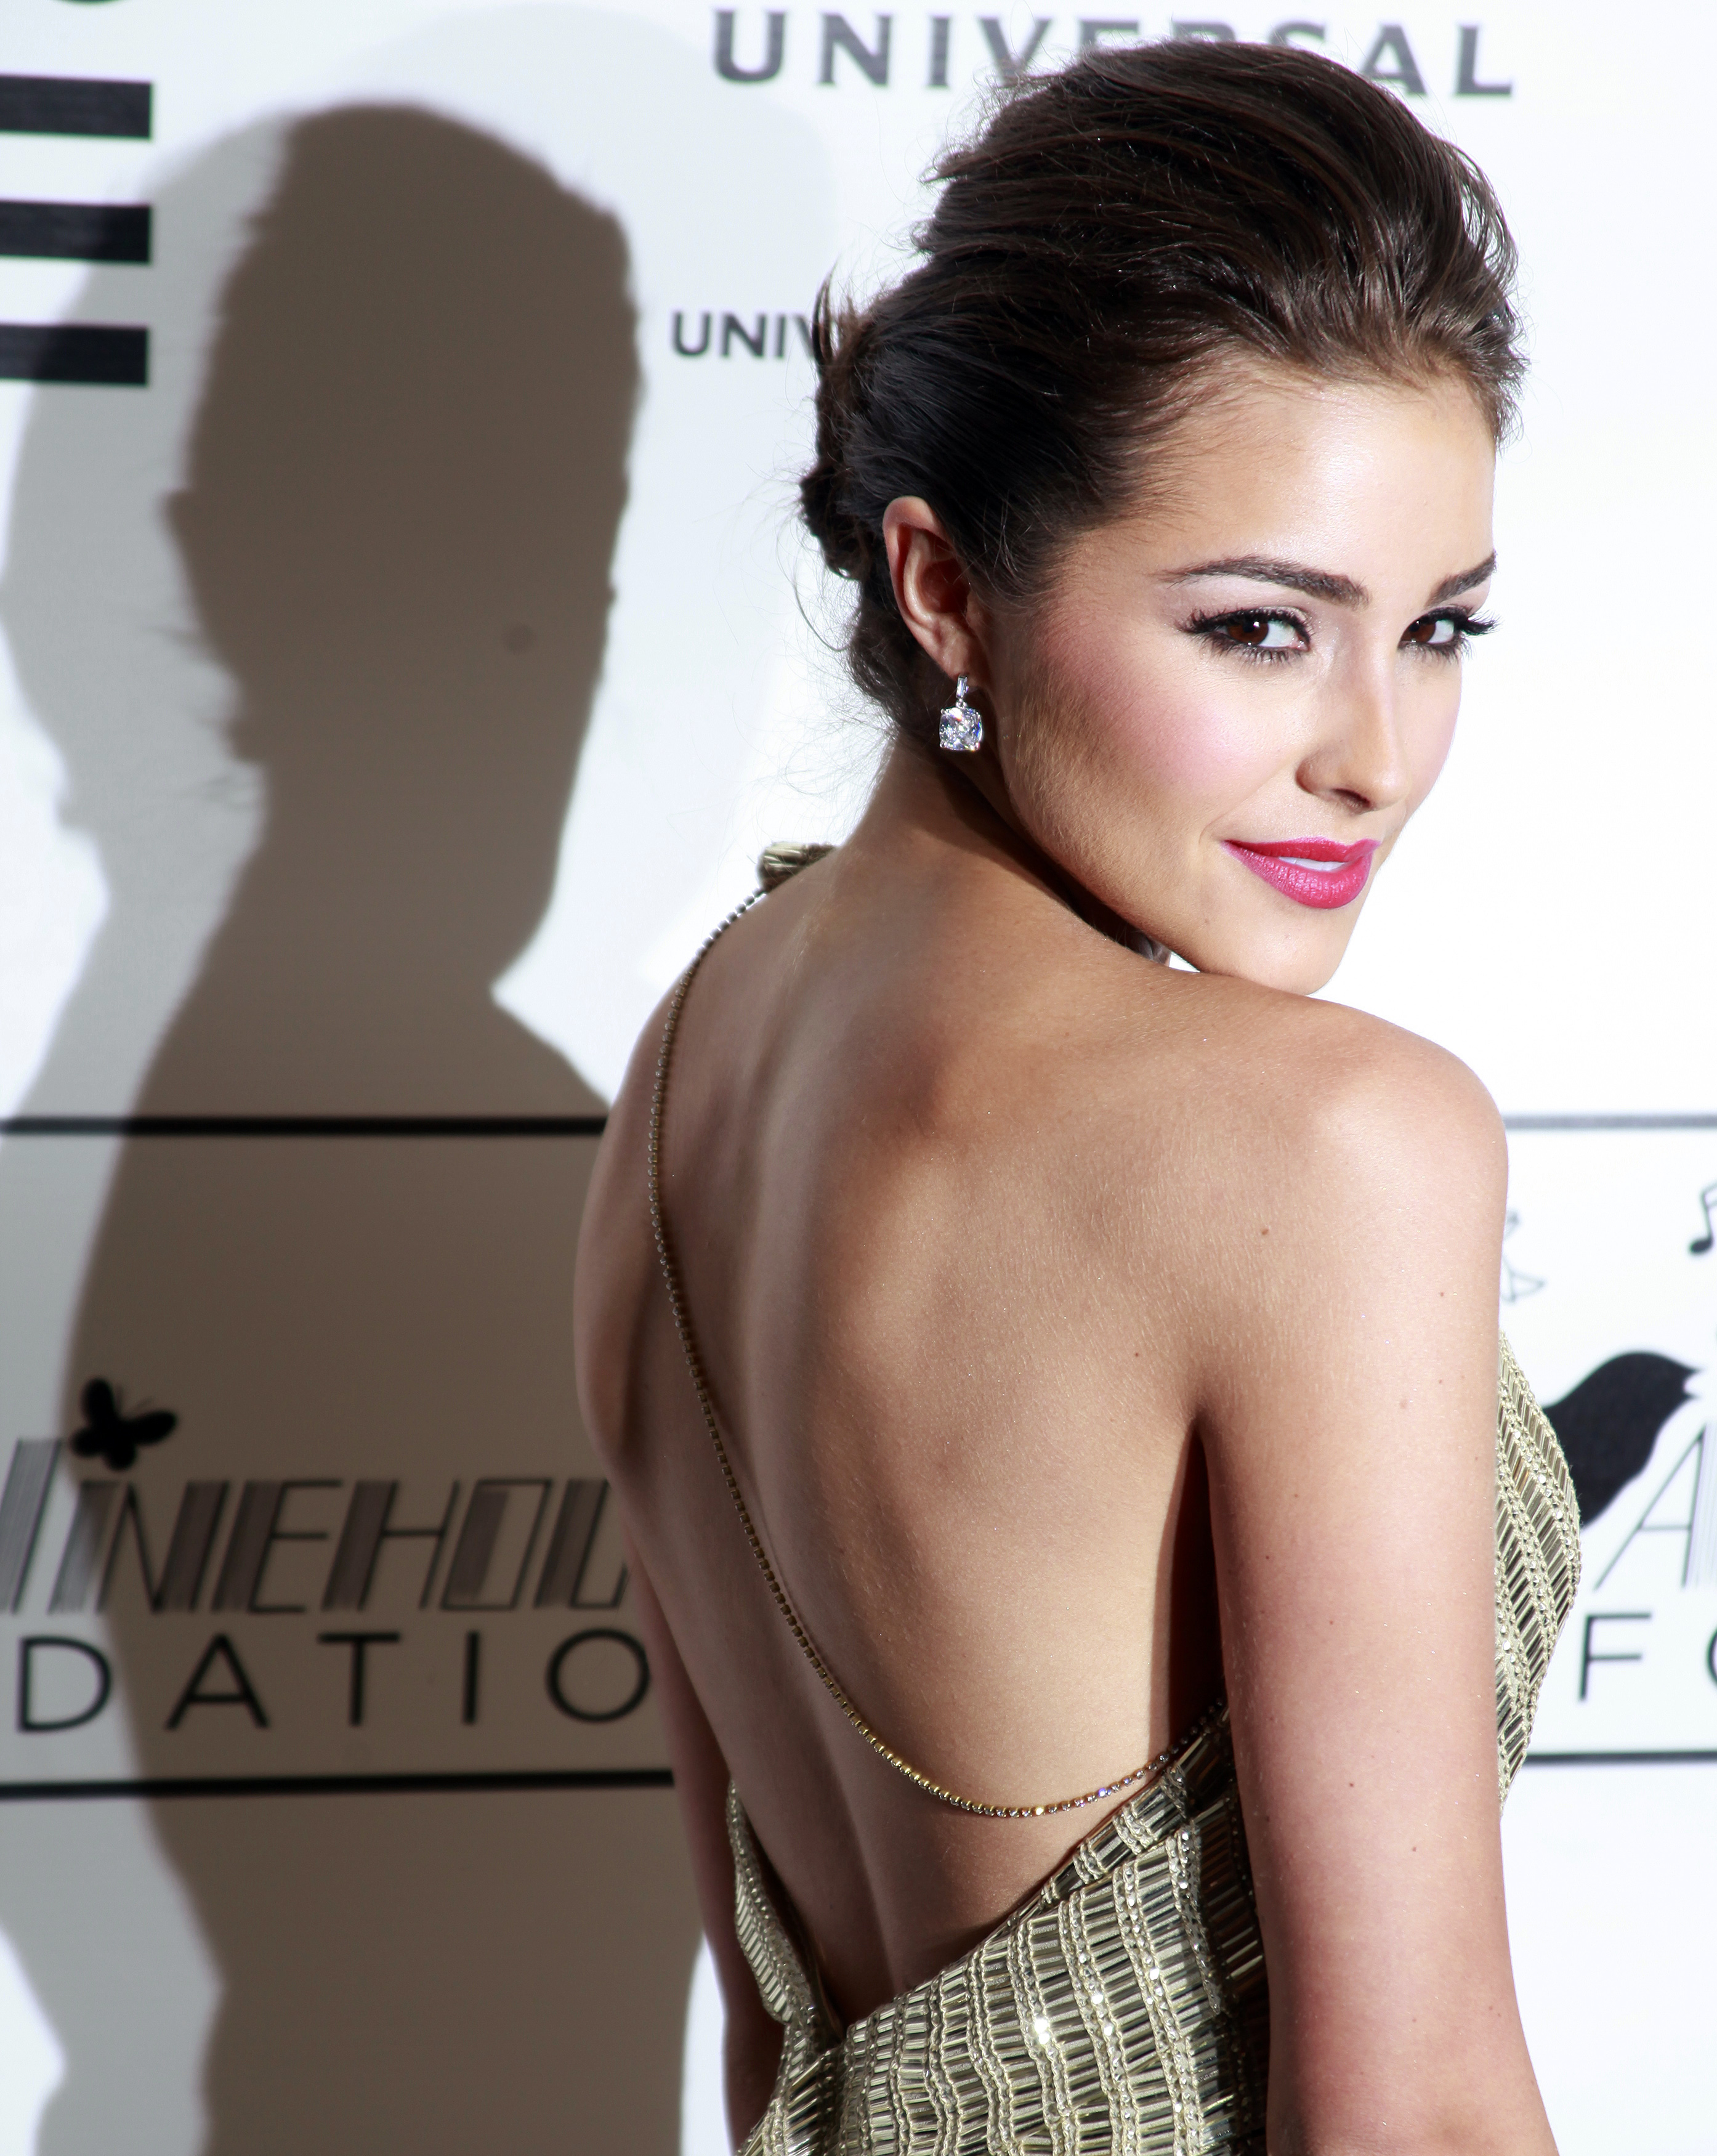 Miss Universe 2012 Olivia Culpo arrives for the Amy Winehouse Foundation Gala in New York March 21, 2013.  REUTERS/Carlo Allegri  (UNITED STATES - Tags: ENTERTAINMENT) - RTR3FAYY